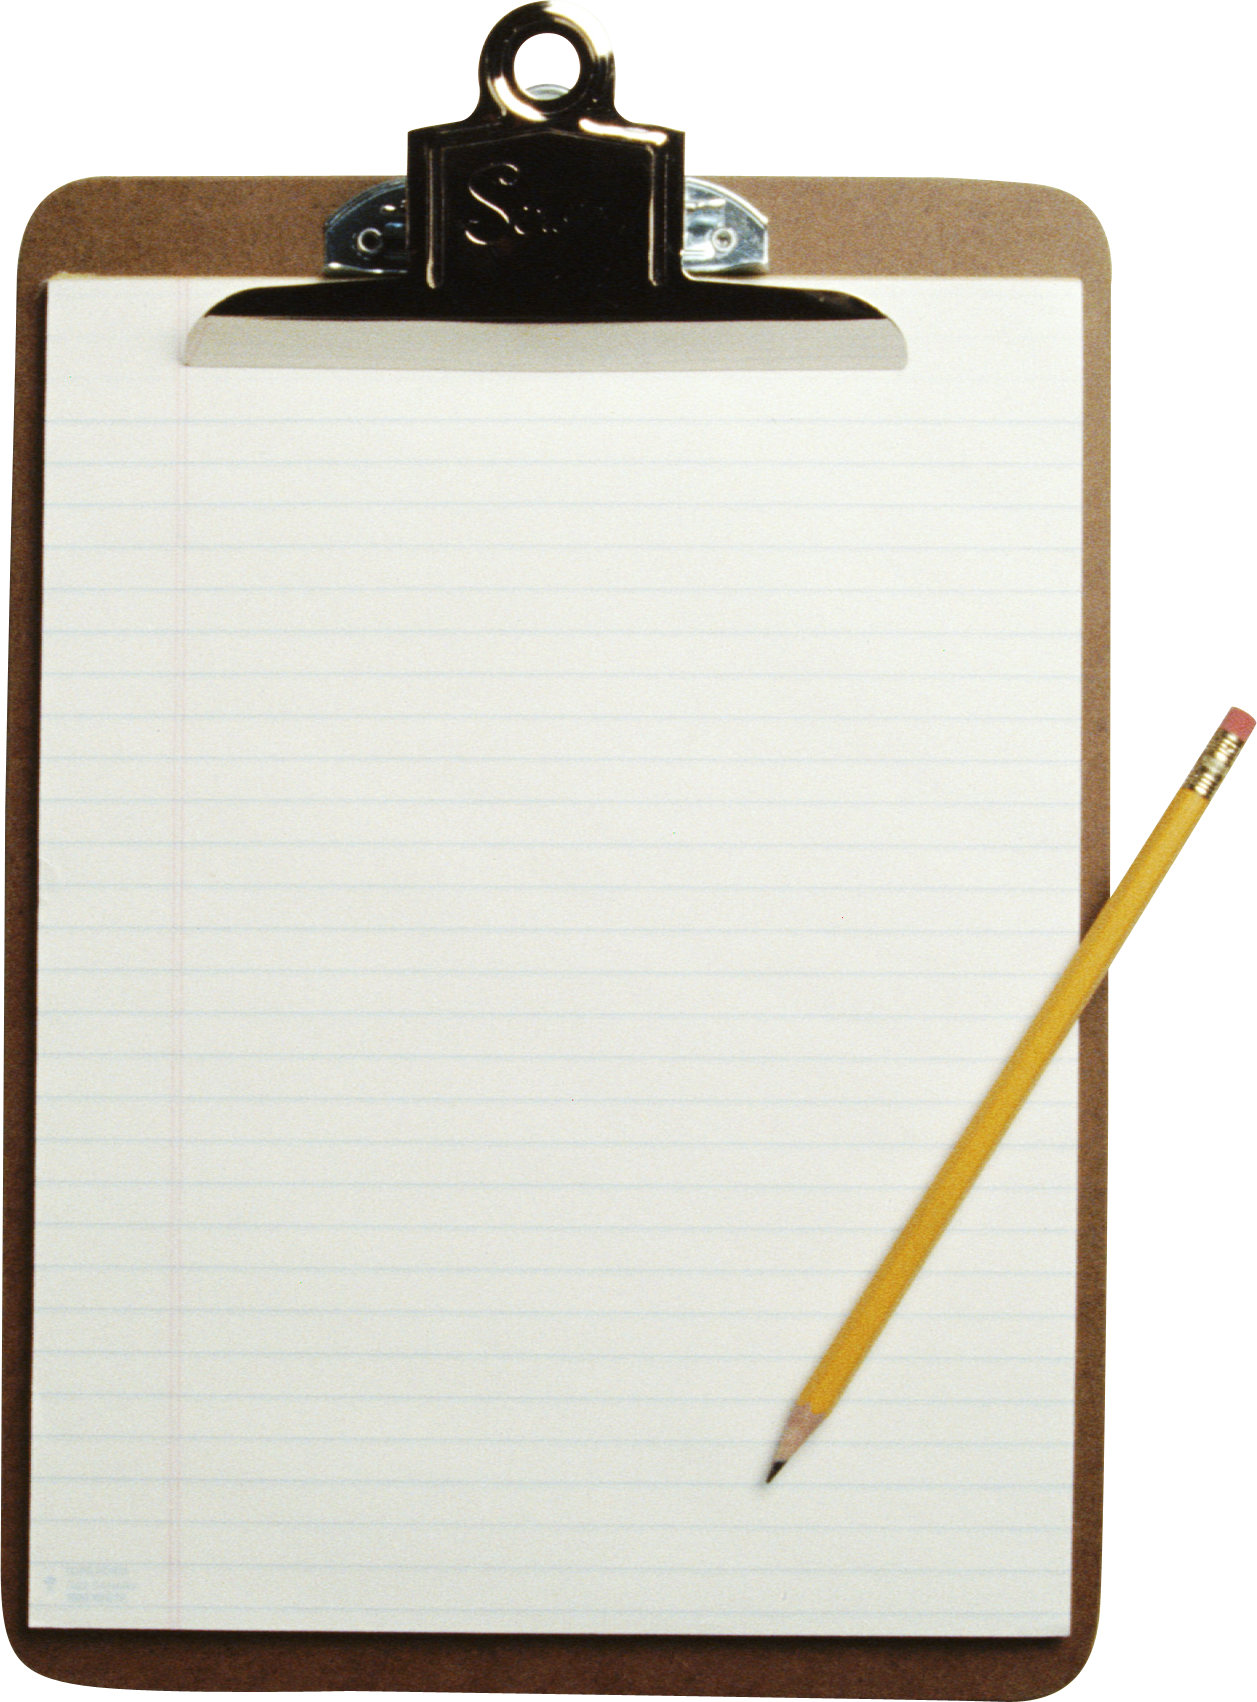 Paper sheet png images. Clipboard clipart transparent background